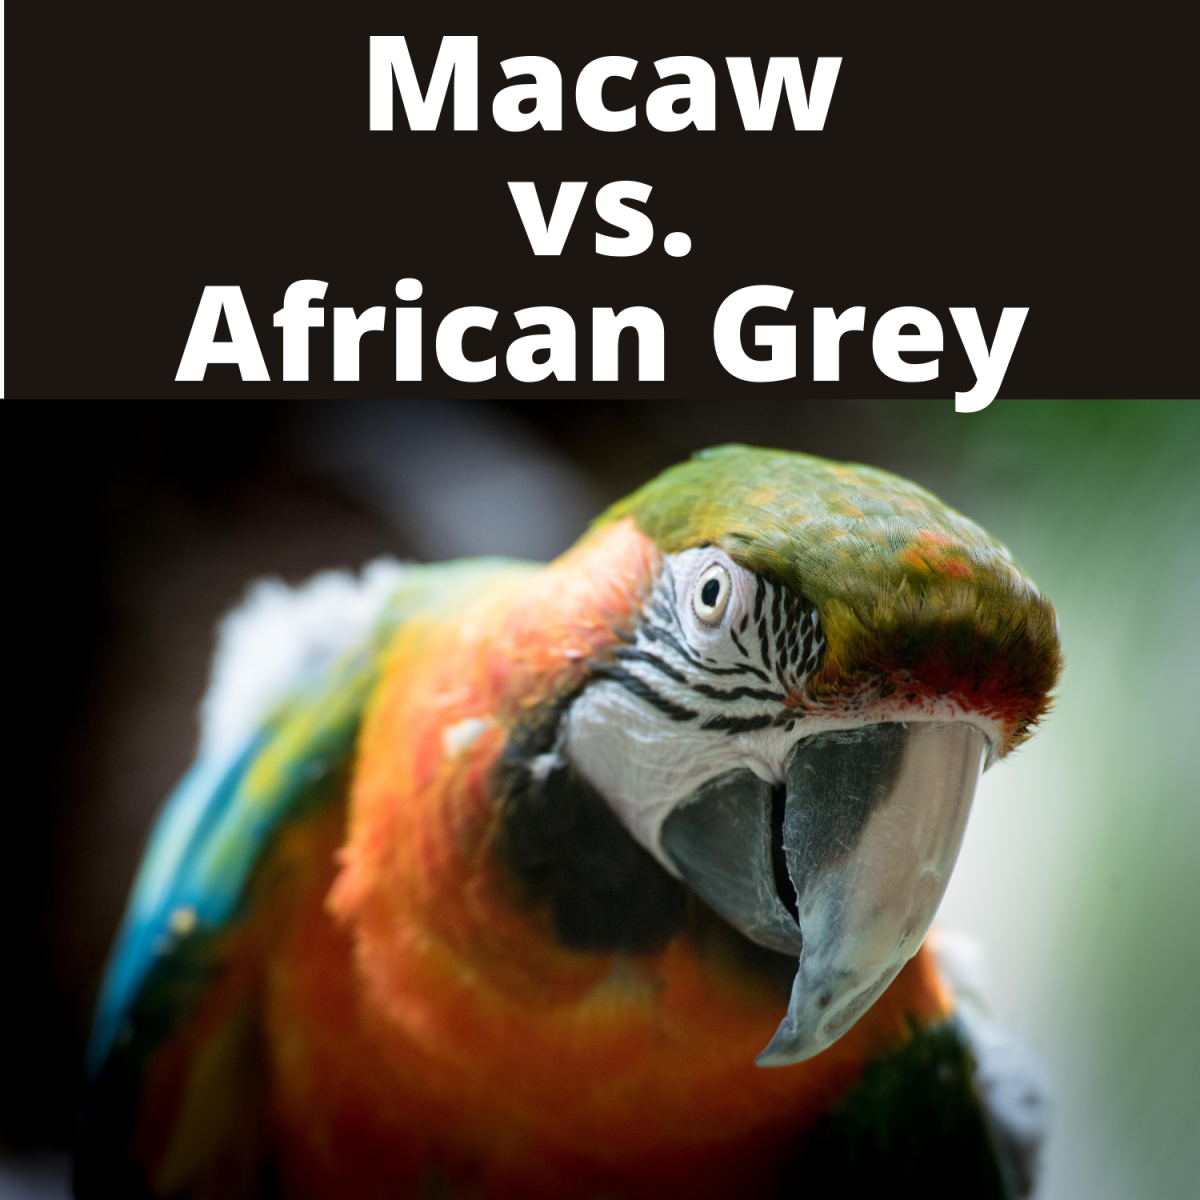 Macaw vs. African Grey: Which Parrot Should I Get?